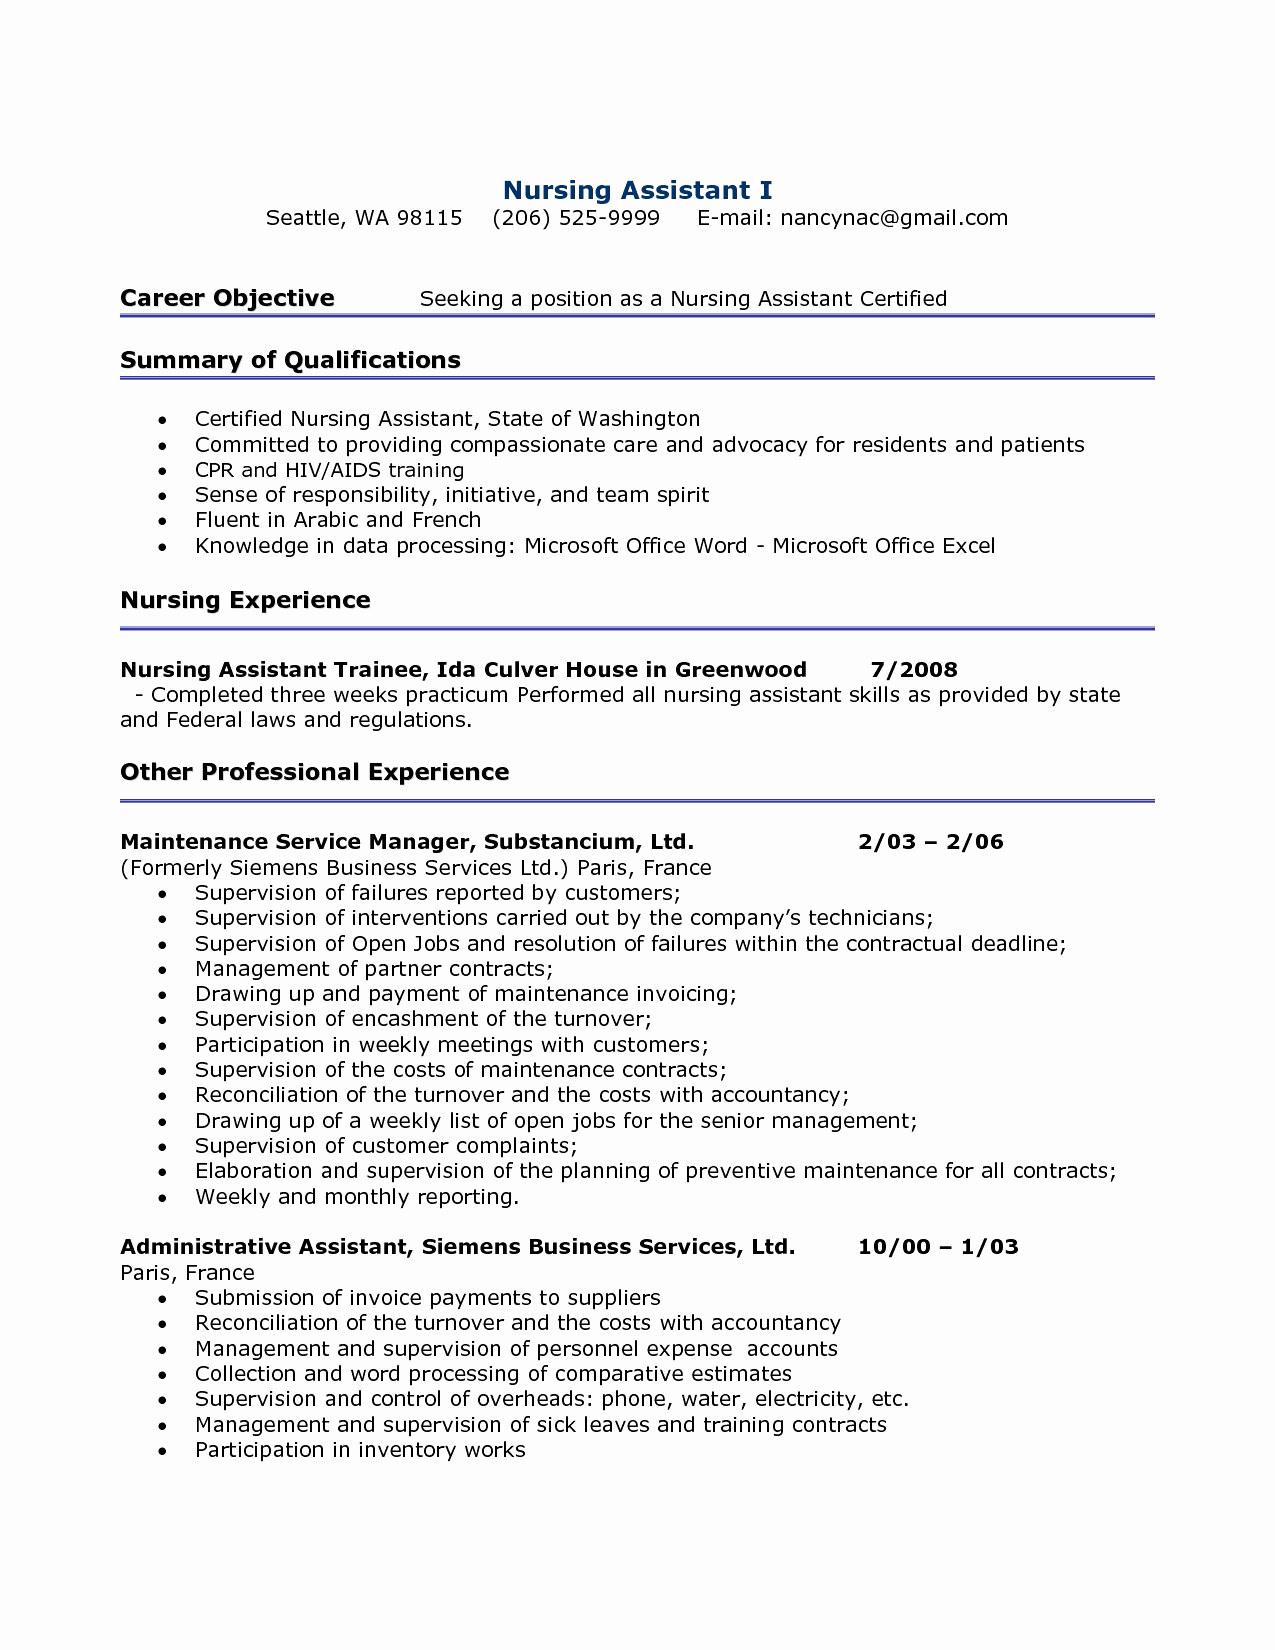 Resume Minimalist - 20 Objectives Ideas for Resume